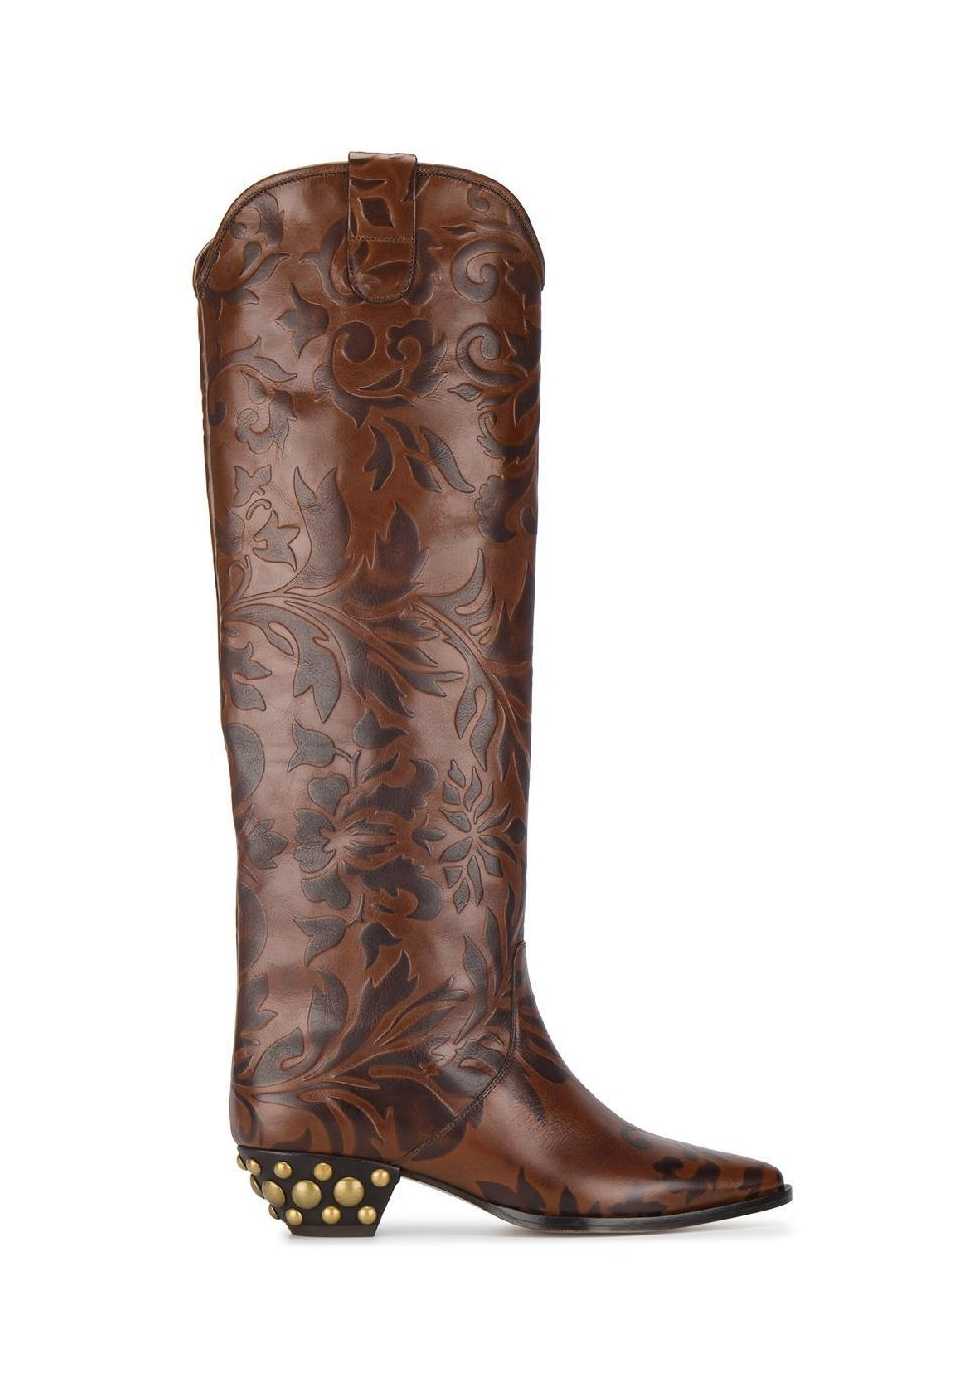 Isabel Marant Knee High Western Boots In Brown Calf Leather Italian Boutique